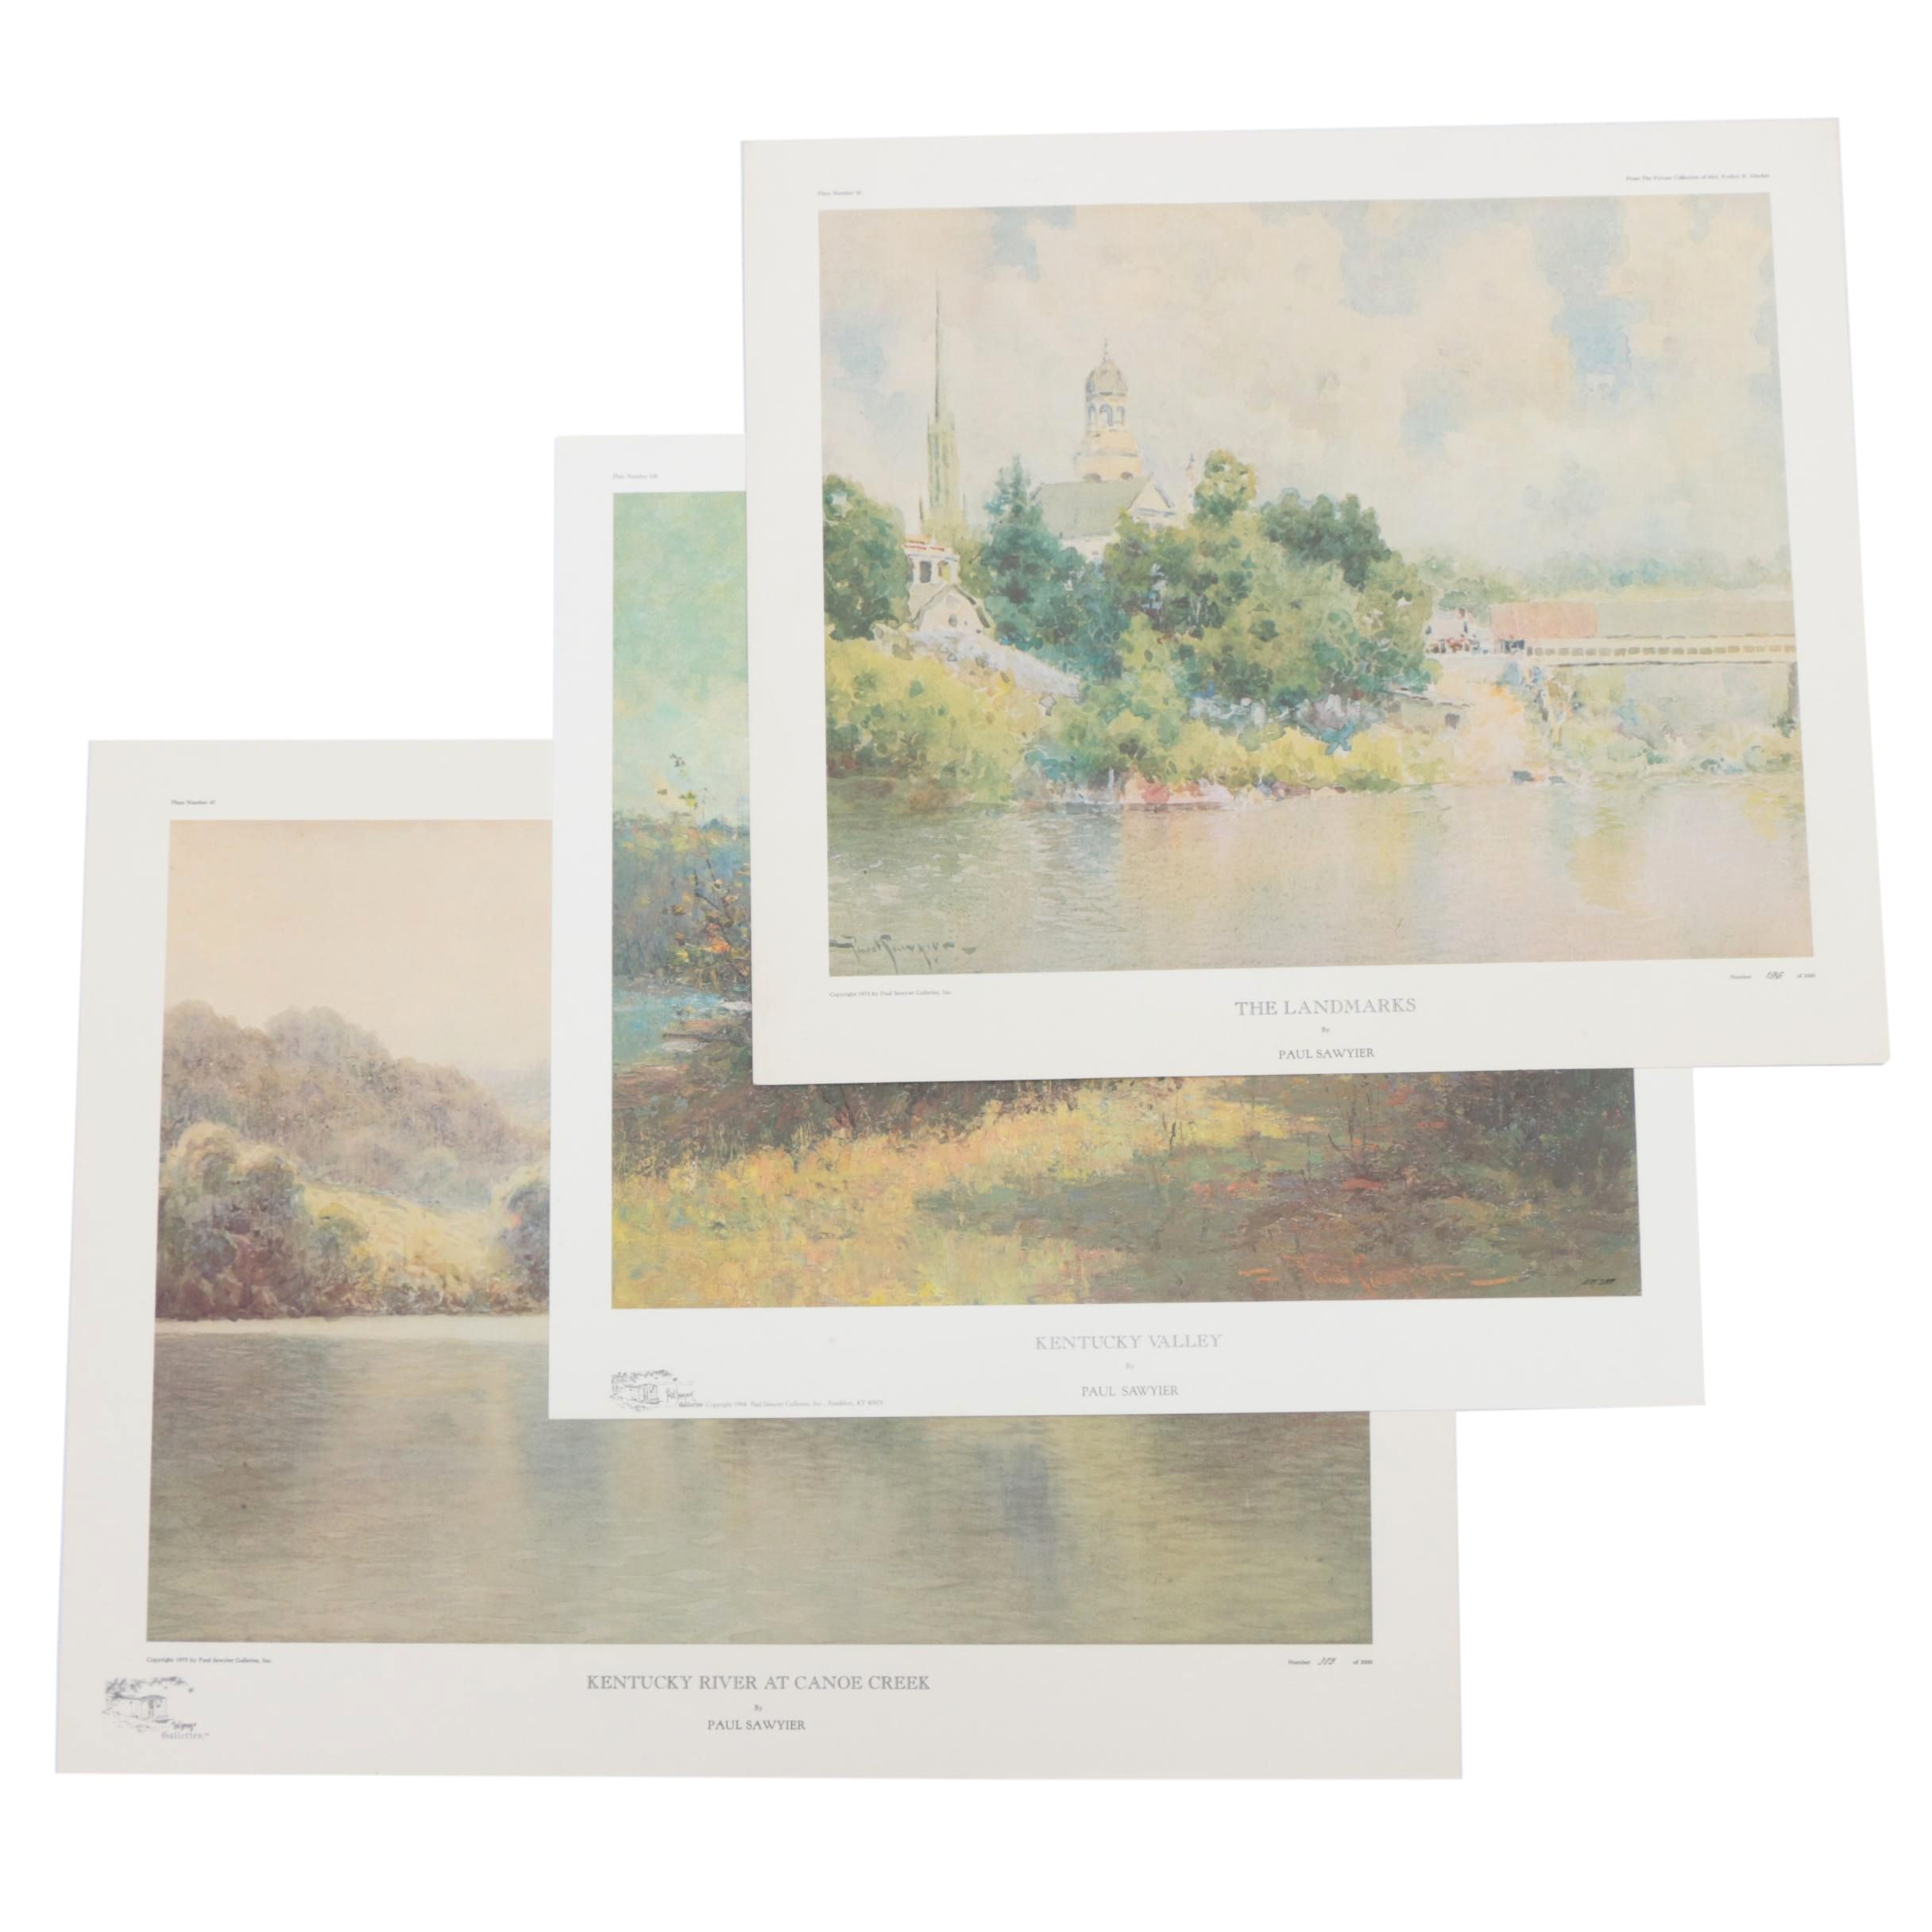 Limited Edition Offset Lithographic Reproductions after Paul Sawyier Paintings